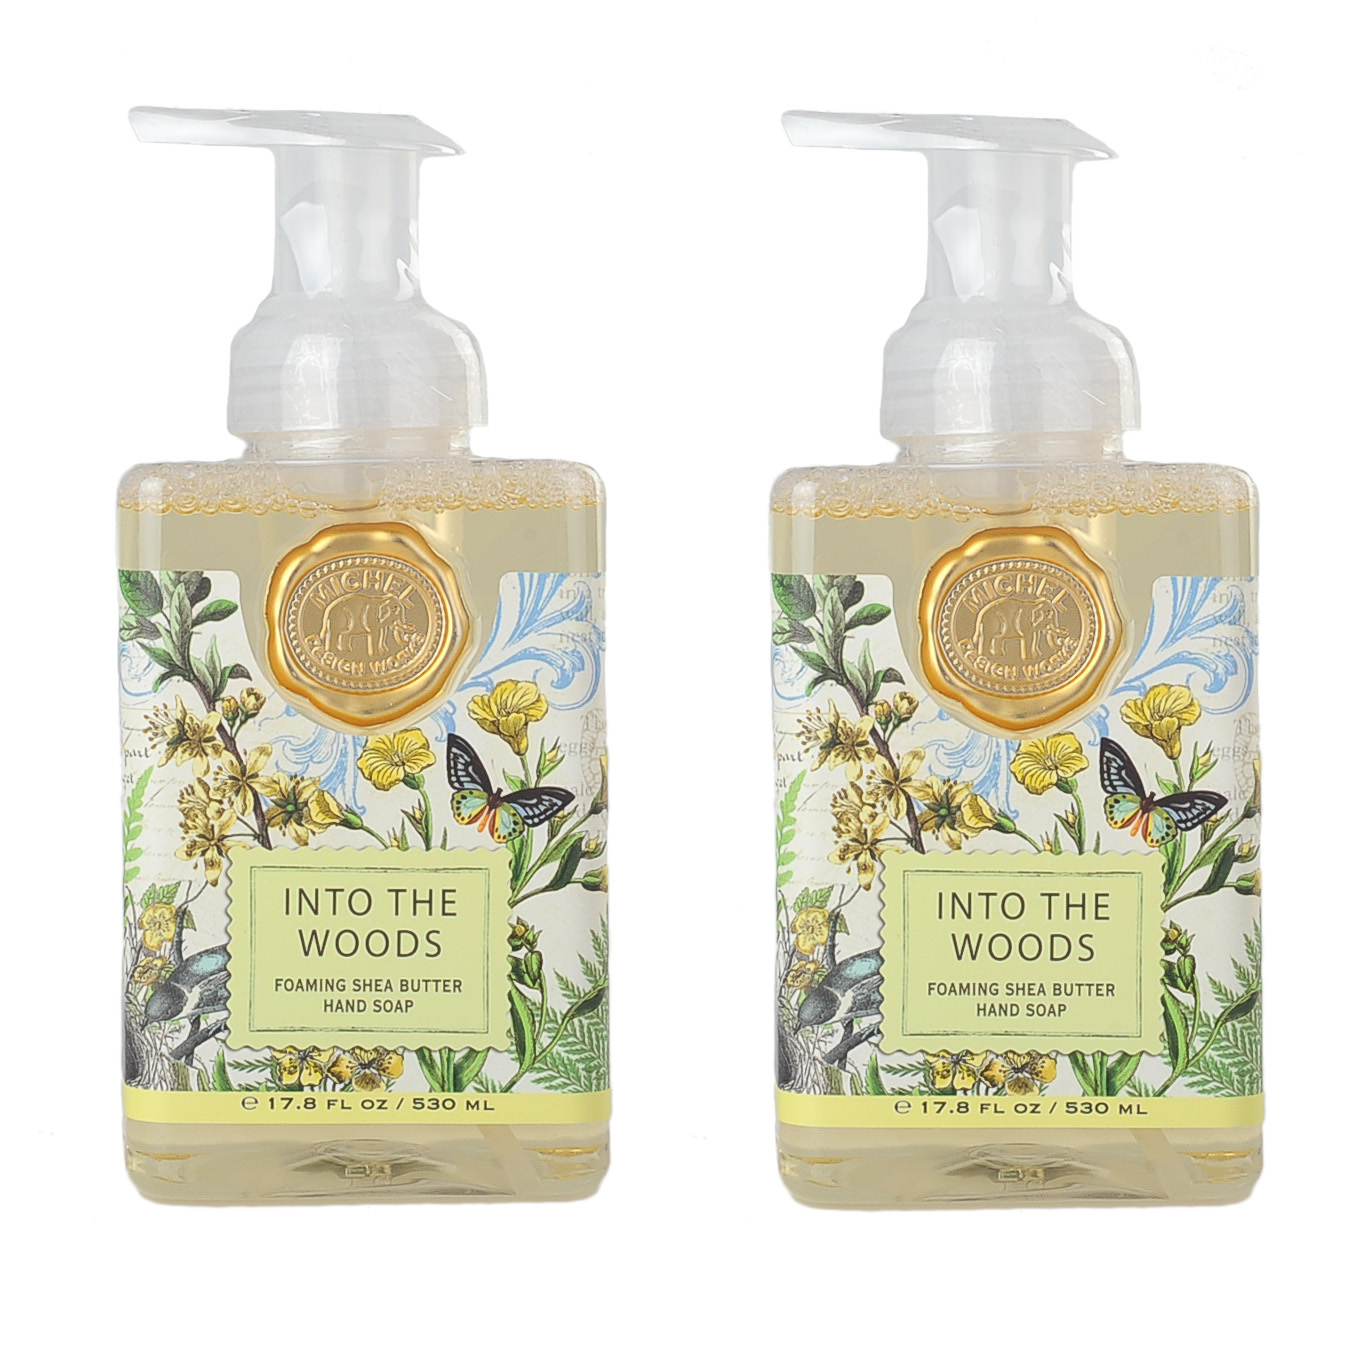 Michel Design Works Foaming Hand Soap 2 Pack Into The Woods Unisex